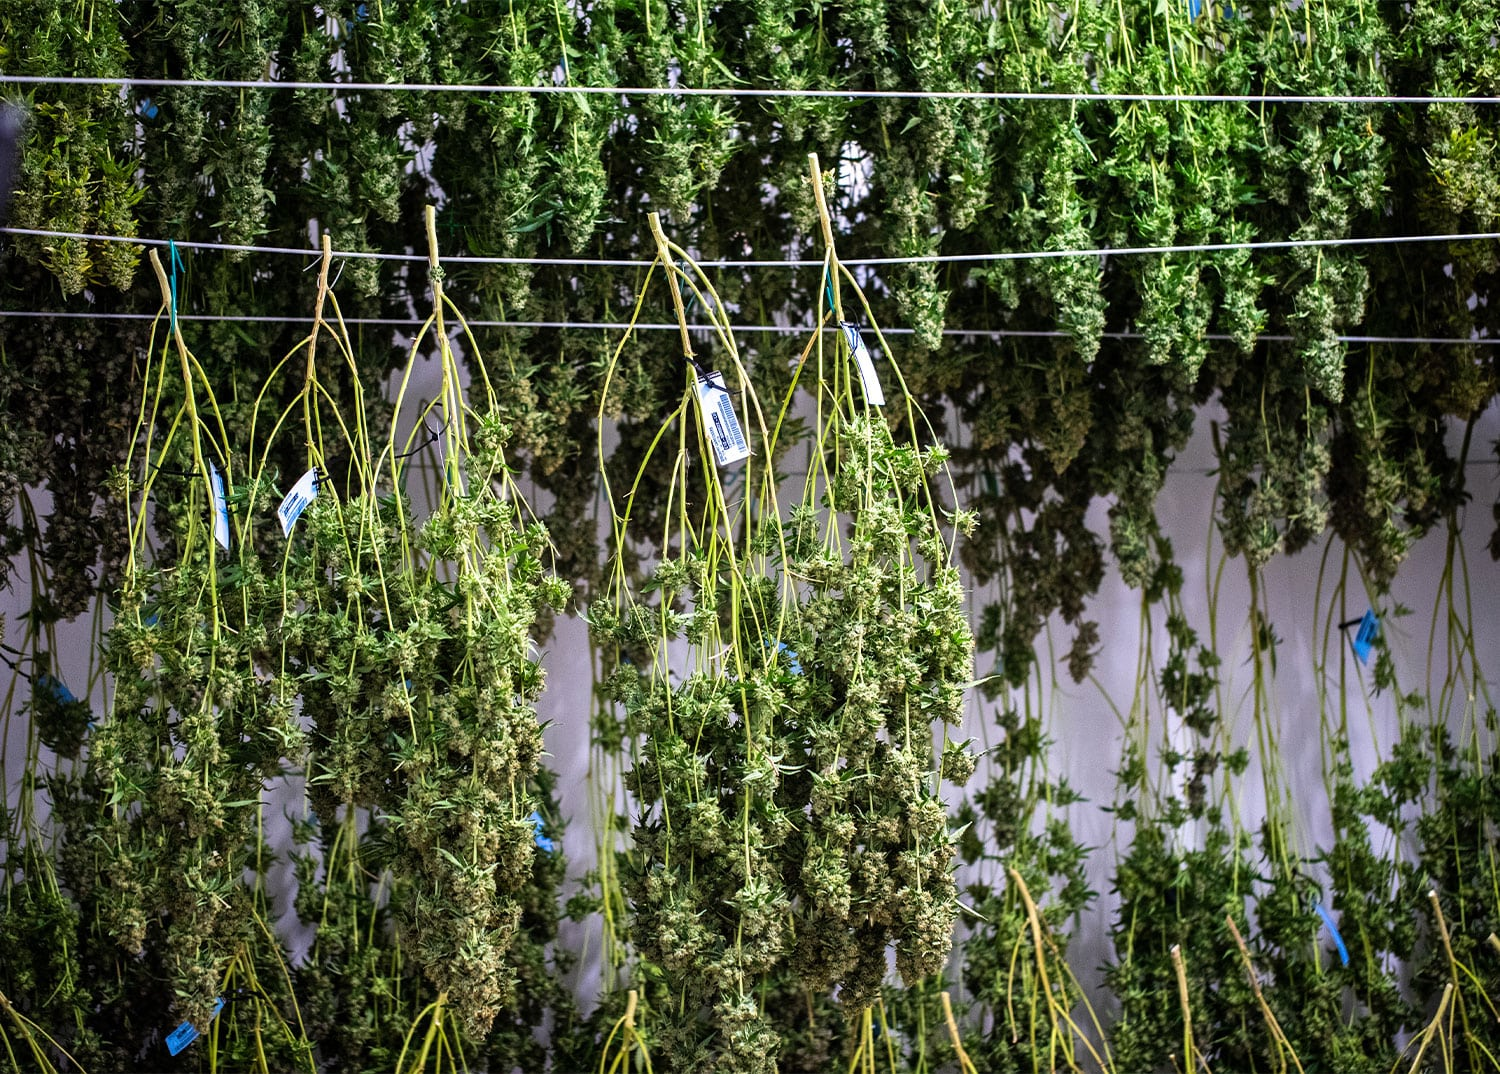 cannabis branches hung on wires to dry